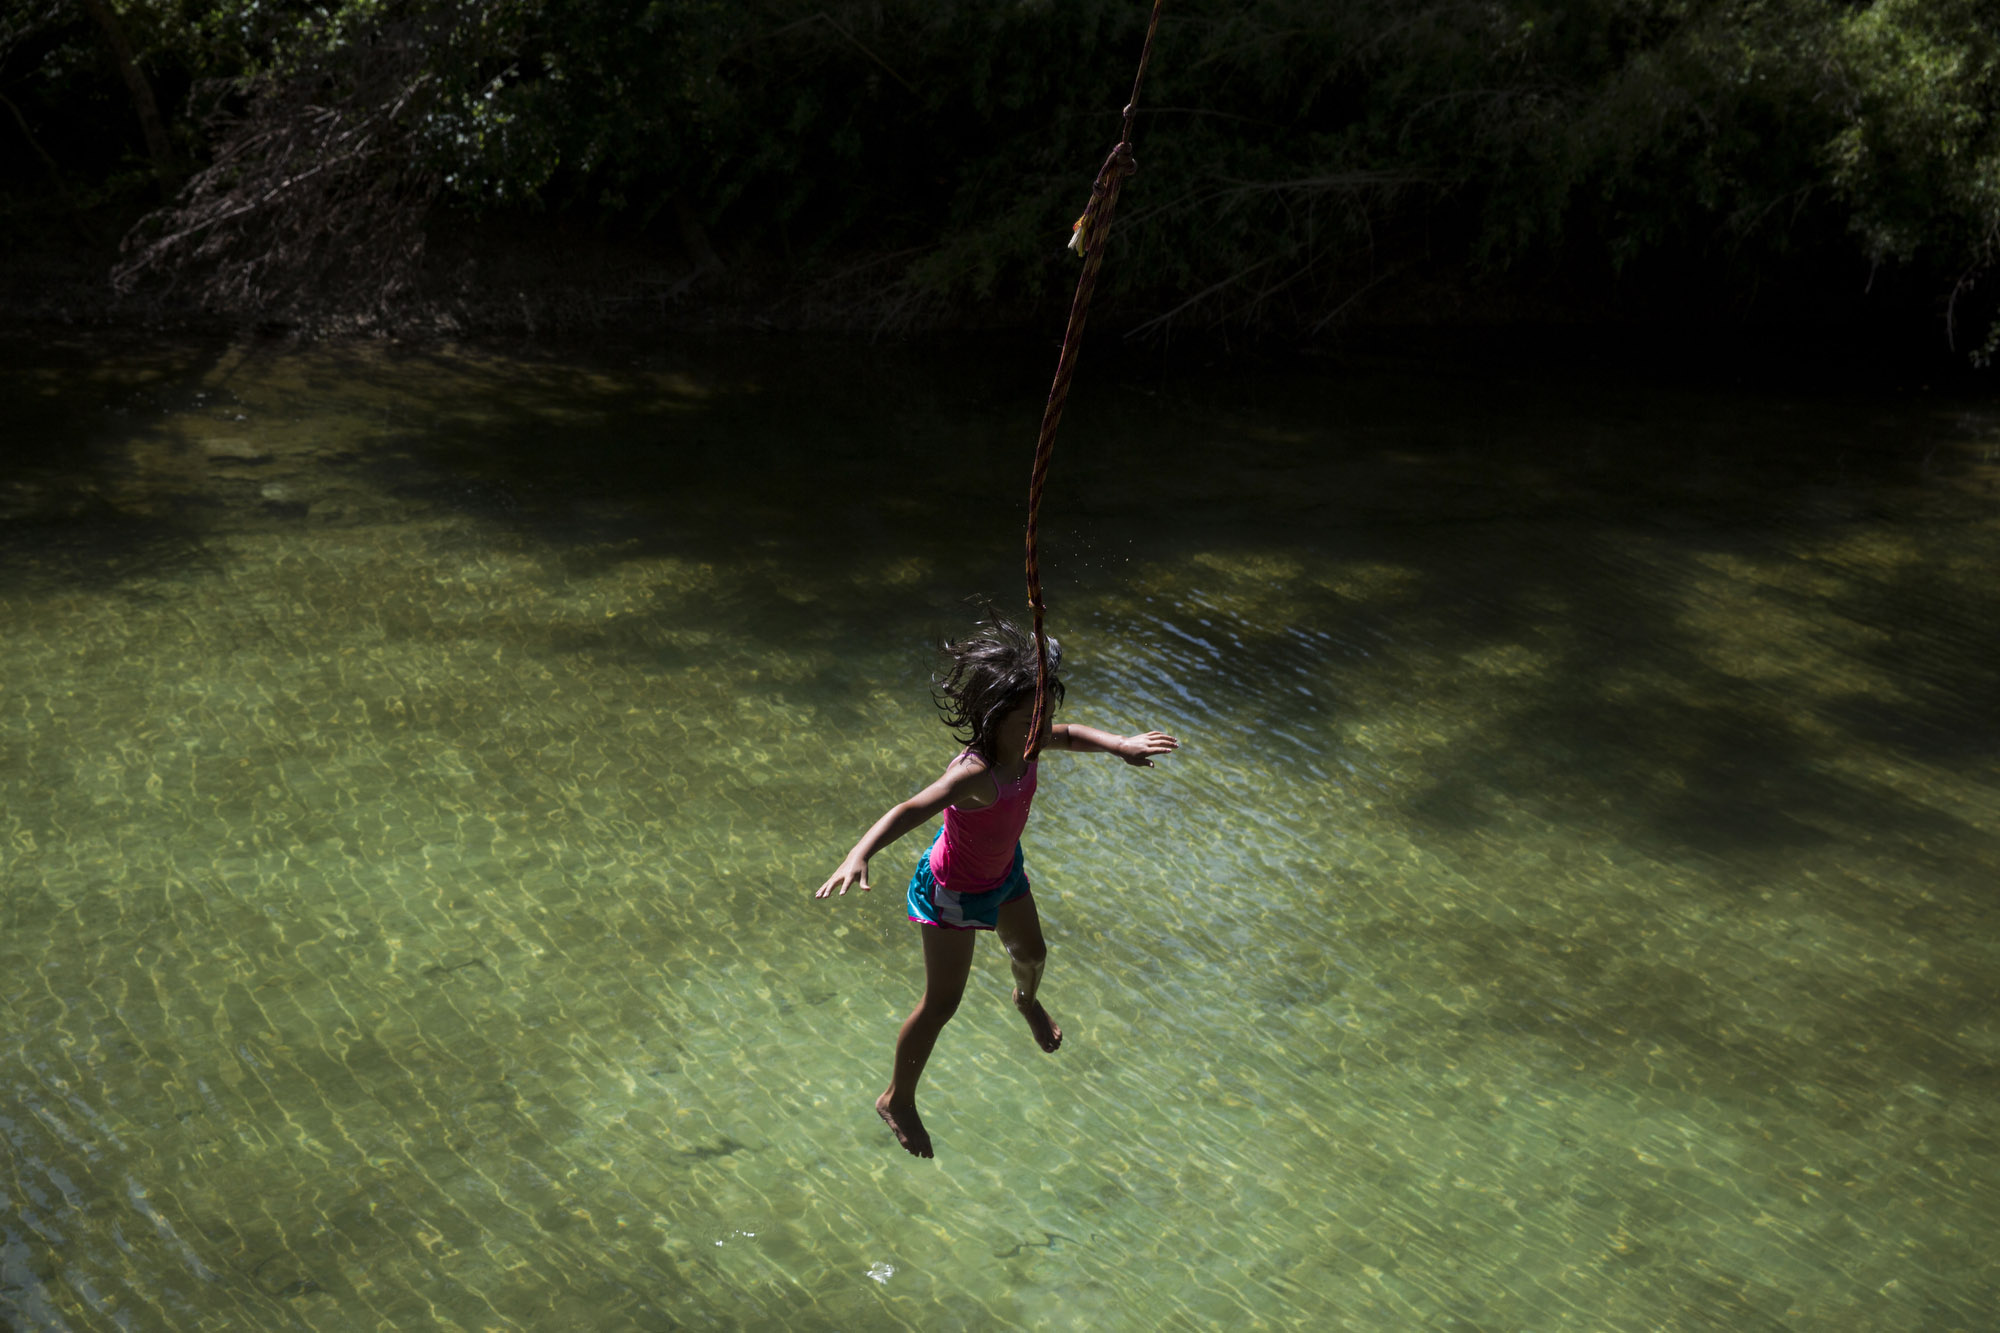 "Serenity Bamberger, 7, falls from a rope swing behind her house into the Little Blanco River on July 11, 2015 in Blanco, Texas.  Two months prior, the same river flooded their home destroying the majority of the family's belongings.  Despite the toll the river has taken, Bertha Rivera, Bamberger's grandmother, said, ""The river bed was dry for years, so now that the water is here I tell the girls to take advantage of it all that they can."""